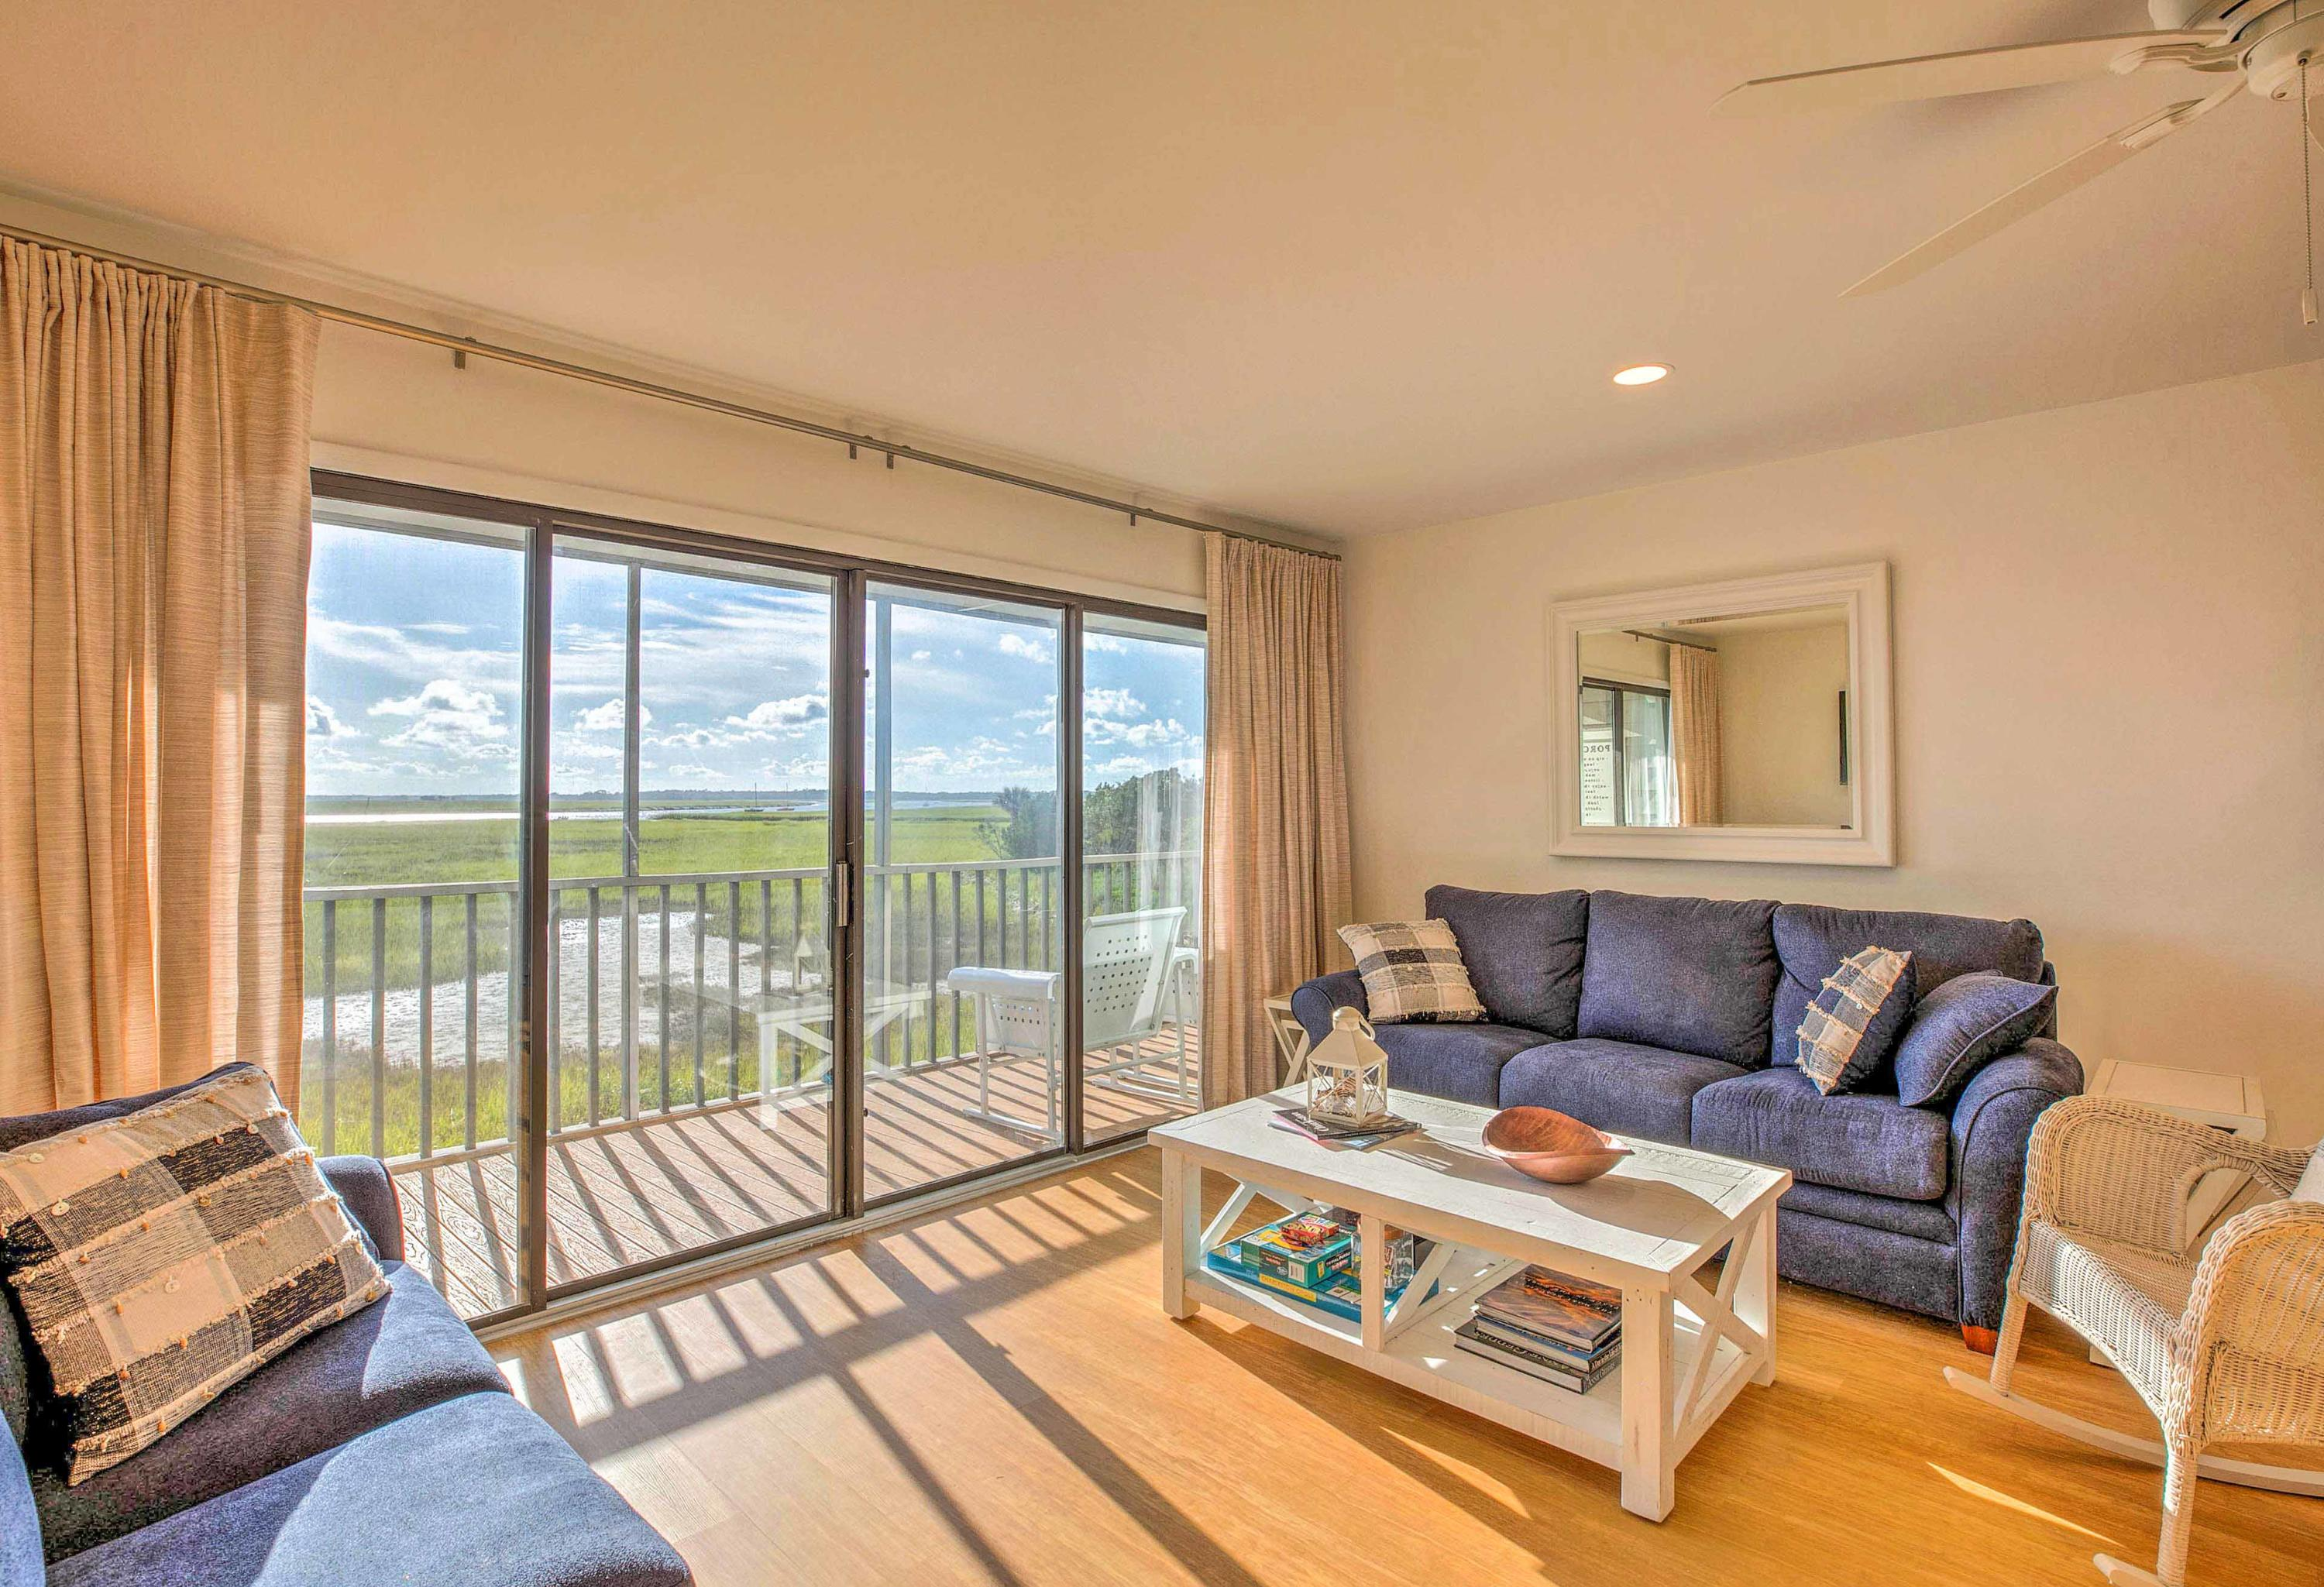 Mariners Cay Homes For Sale - 93 Mariners Cay, Folly Beach, SC - 30